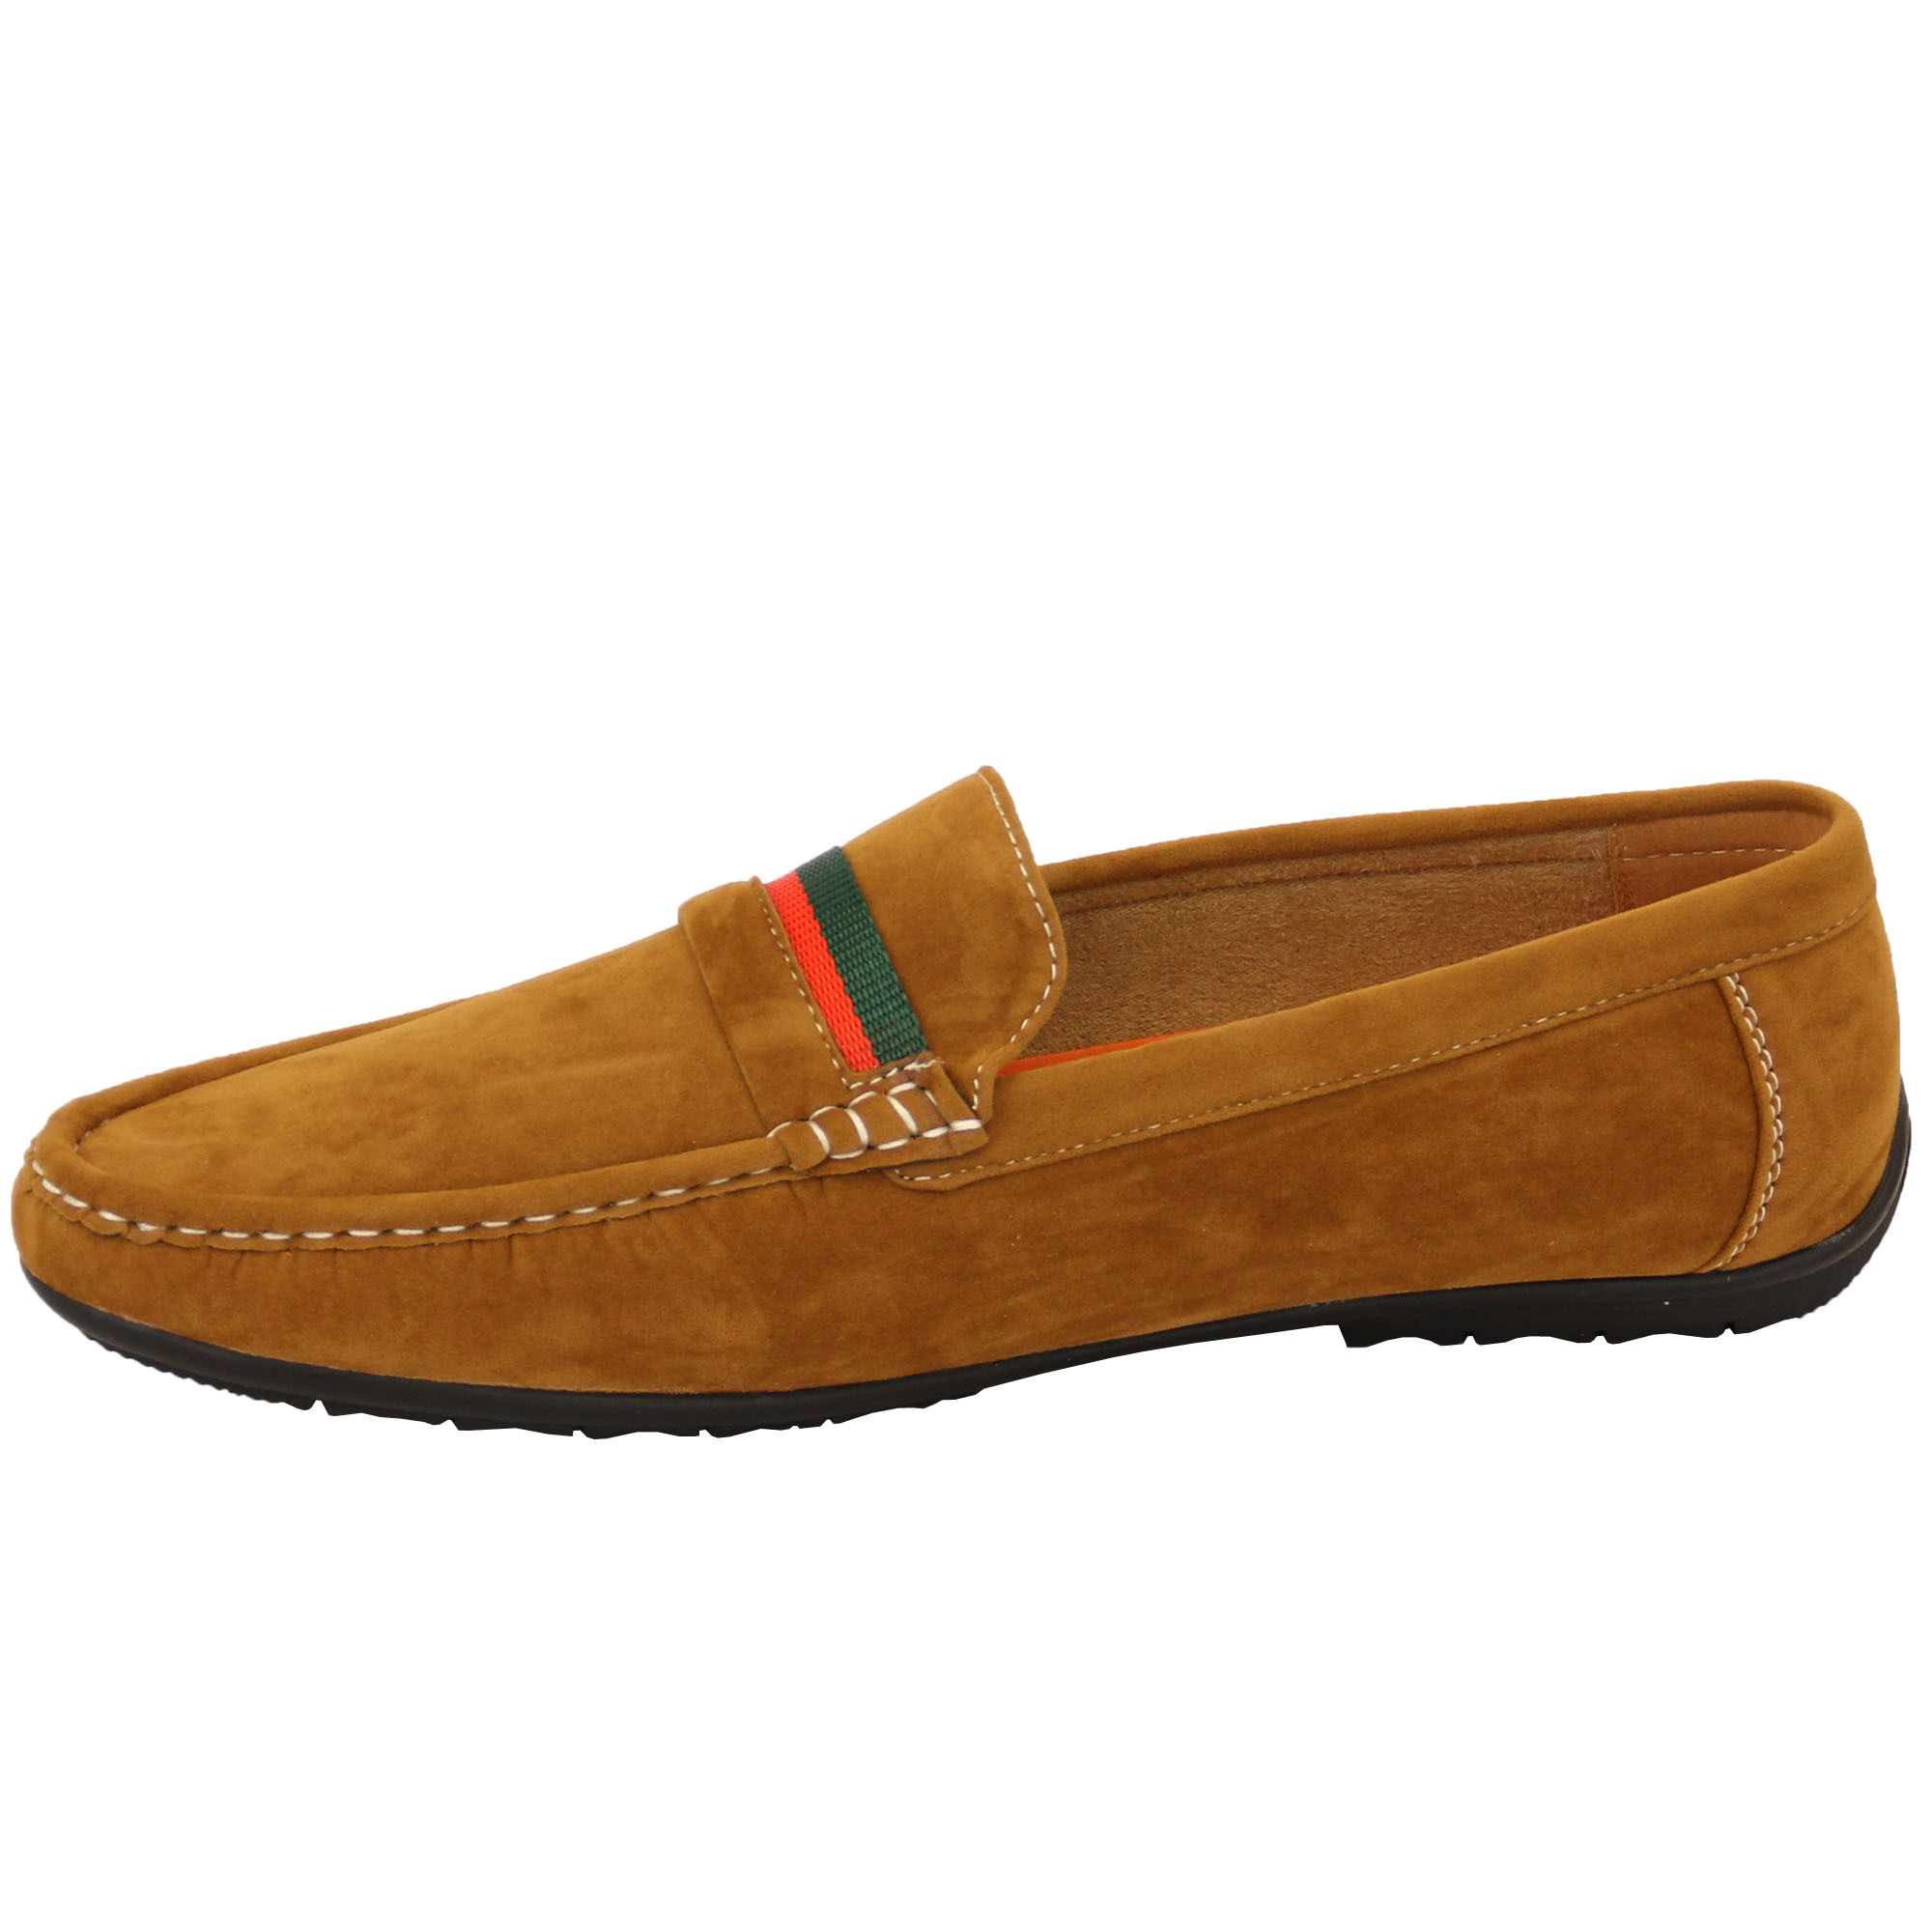 Mens-Moccasins-Suede-Look-Driving-Loafers-Slip-On-Boat-Shoes-Ribbon-Tassle-New thumbnail 8